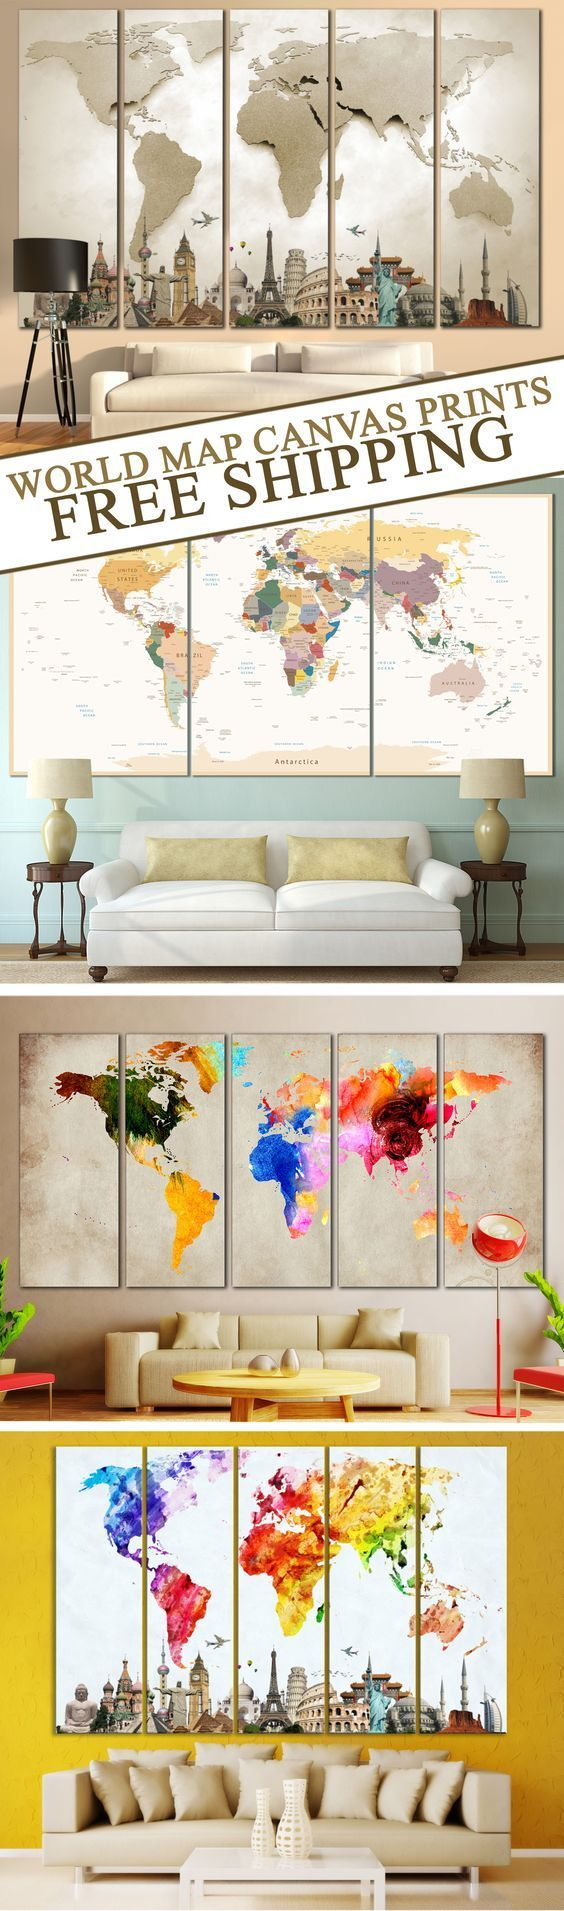 Creative world map canvas prints wall art for large home or office